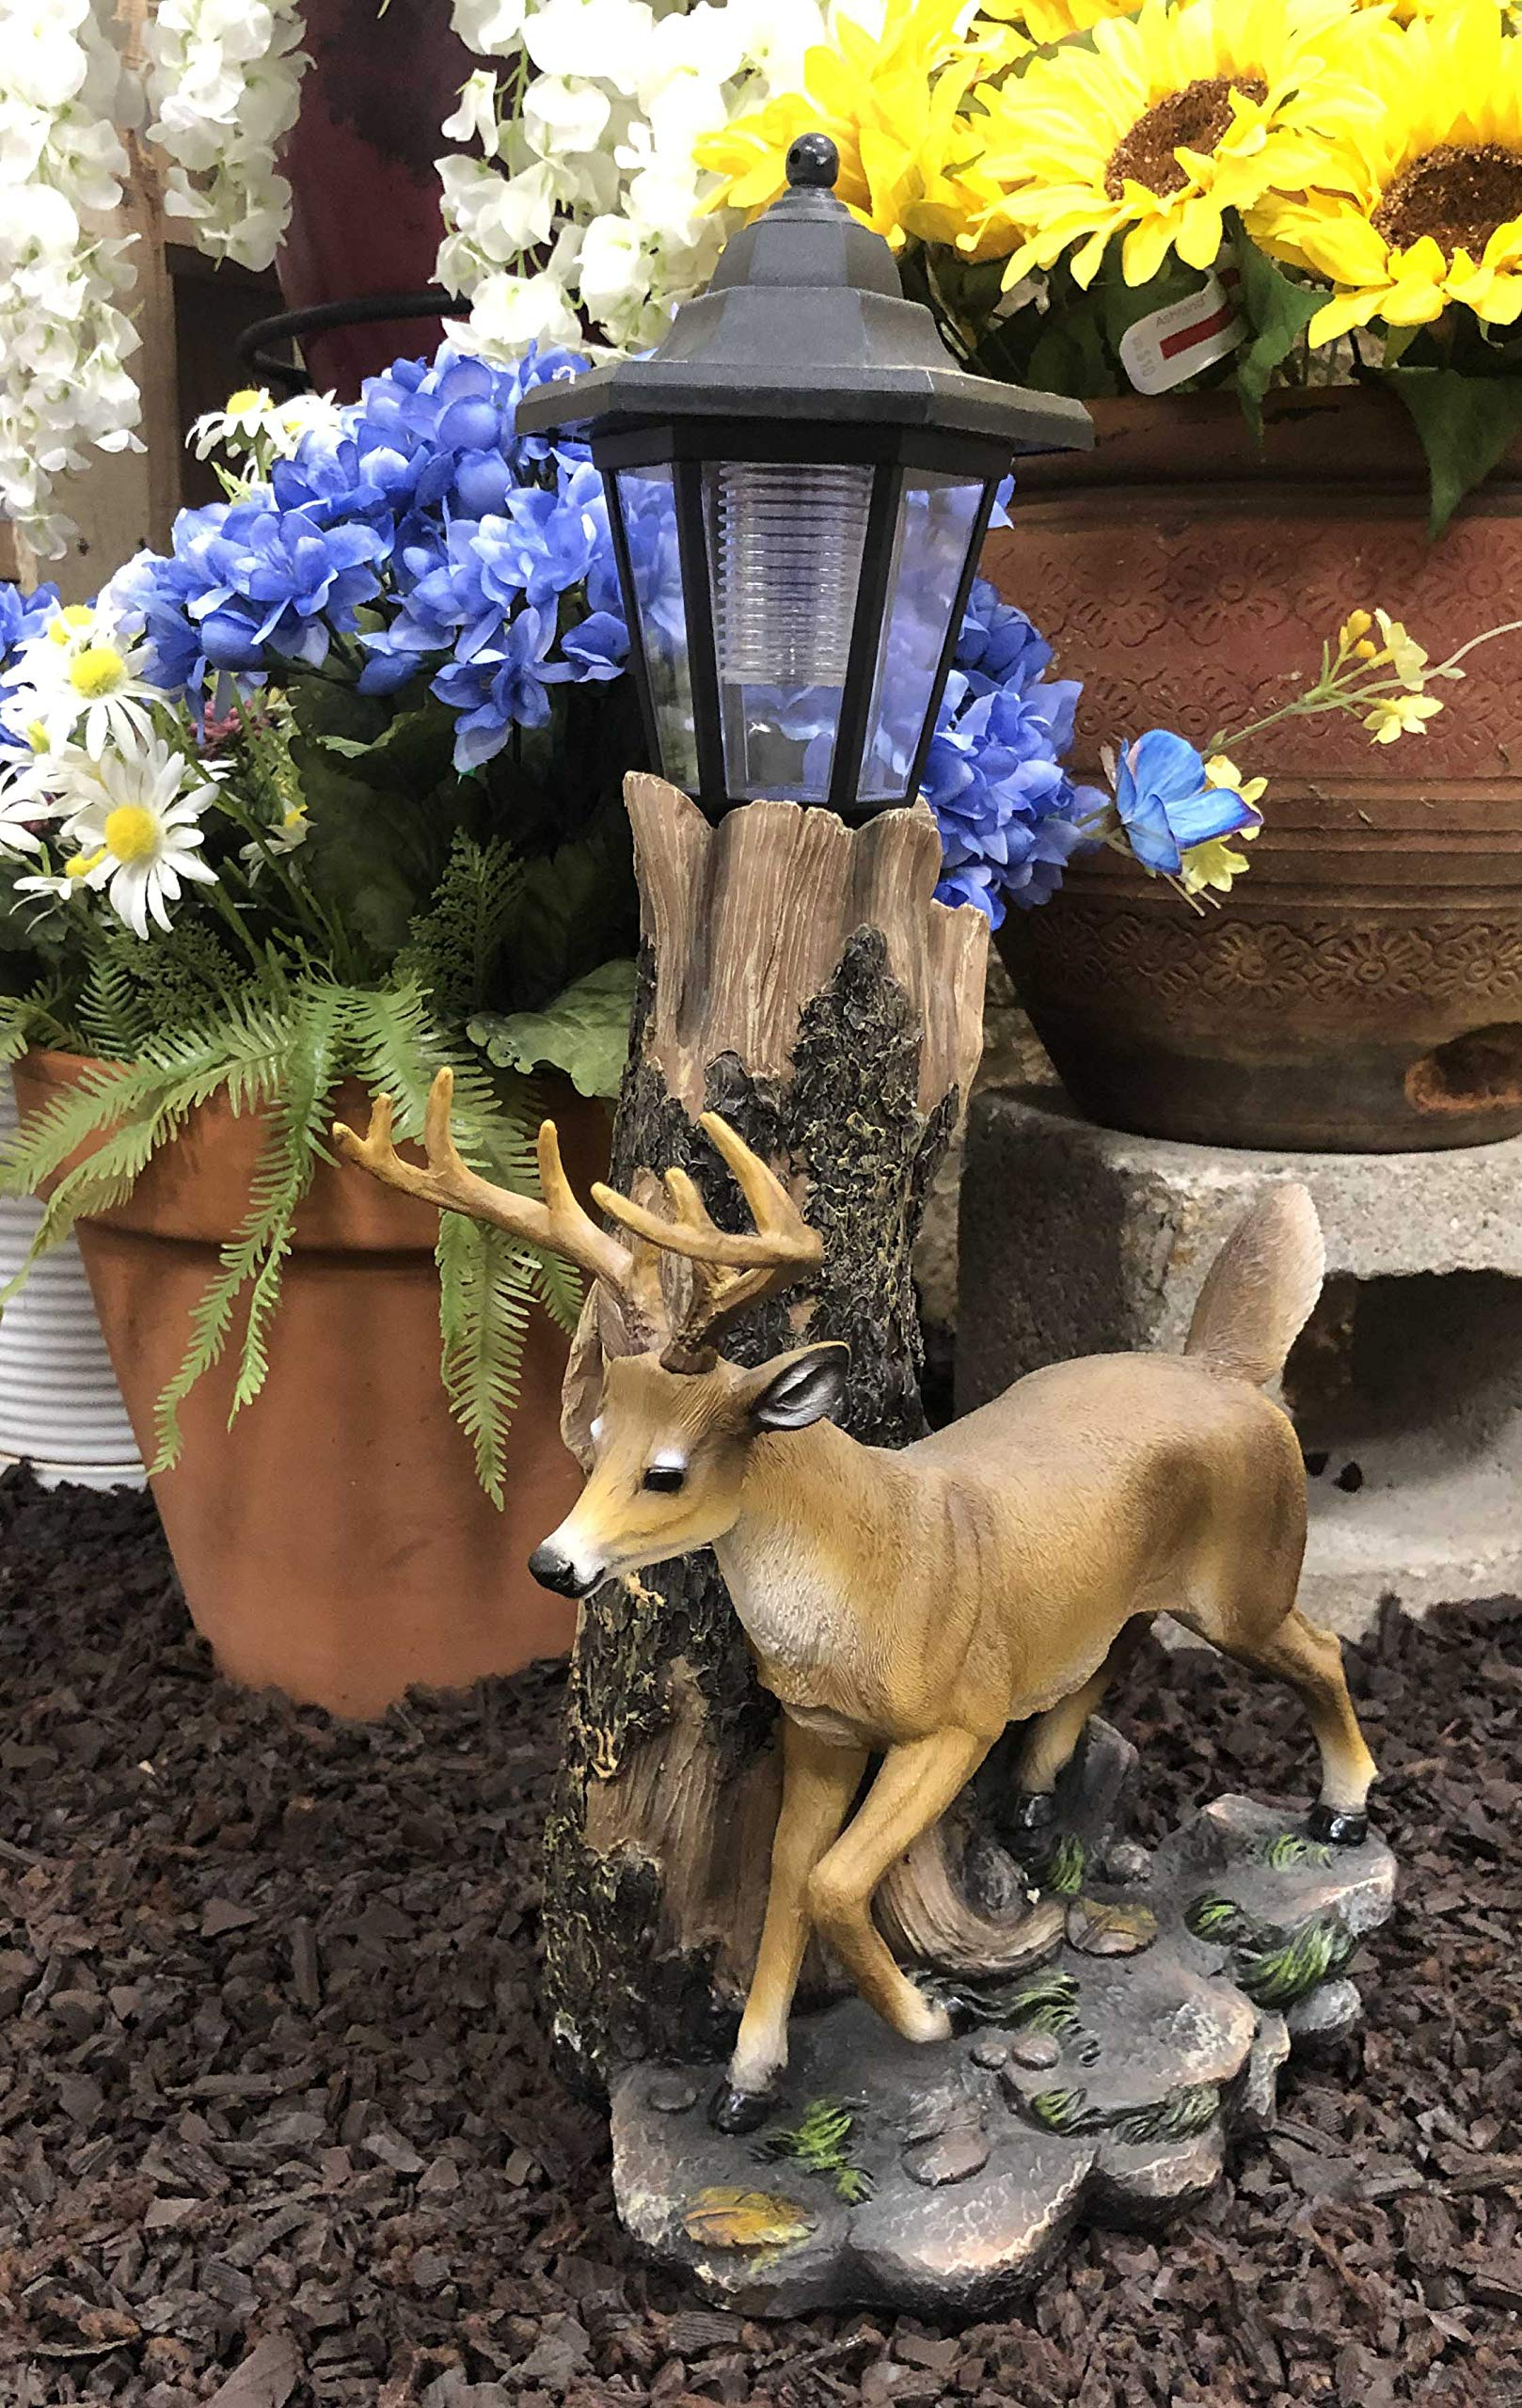 Ebros Rustic Forest Light Outpost Emperor 12 Point Buck Deer Statue with Solar Powered Lantern LED Light Patio Home Decor Deers Does Stag Cabin Lodge Sculpture by Ebros Gift